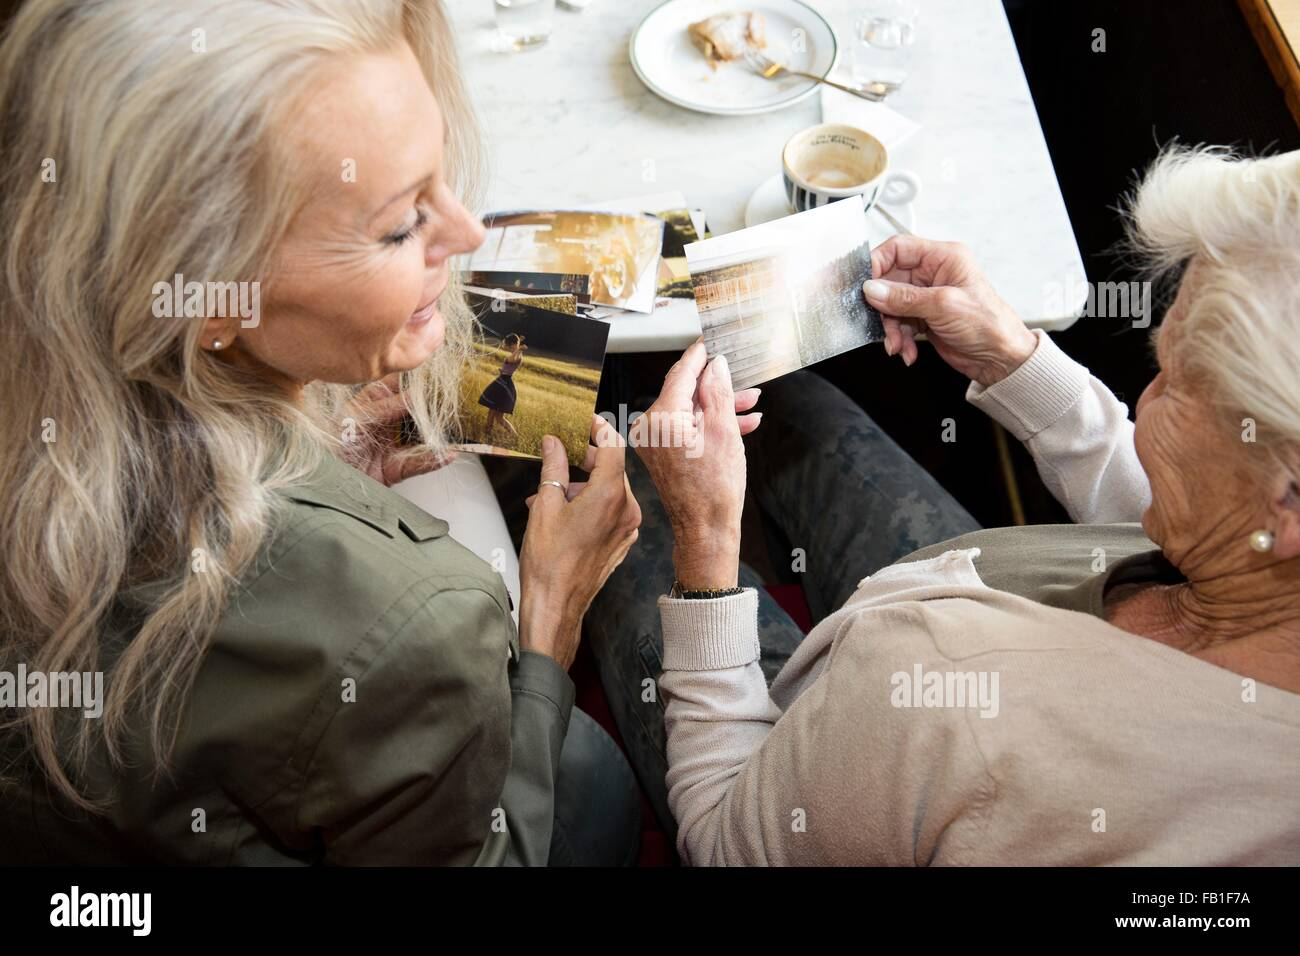 Mother and daughter sitting together in cafe, looking at photographs, rear view - Stock Image